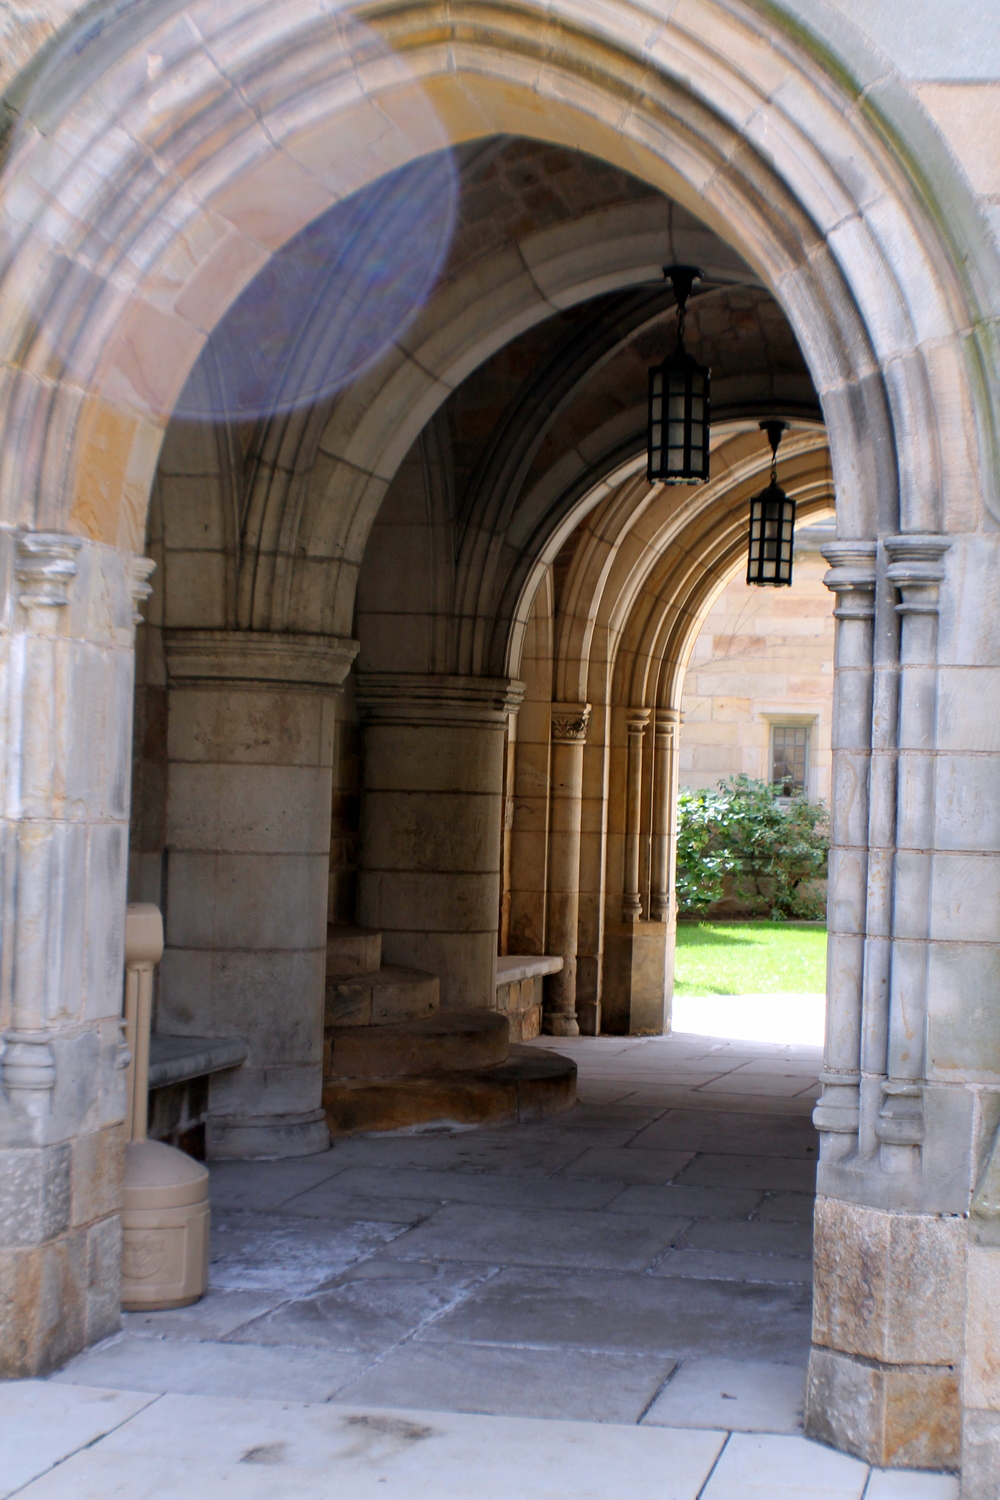 Architectural detail, Bran  ford College, Yale University. Image Jessi  ca Gordon Ryan